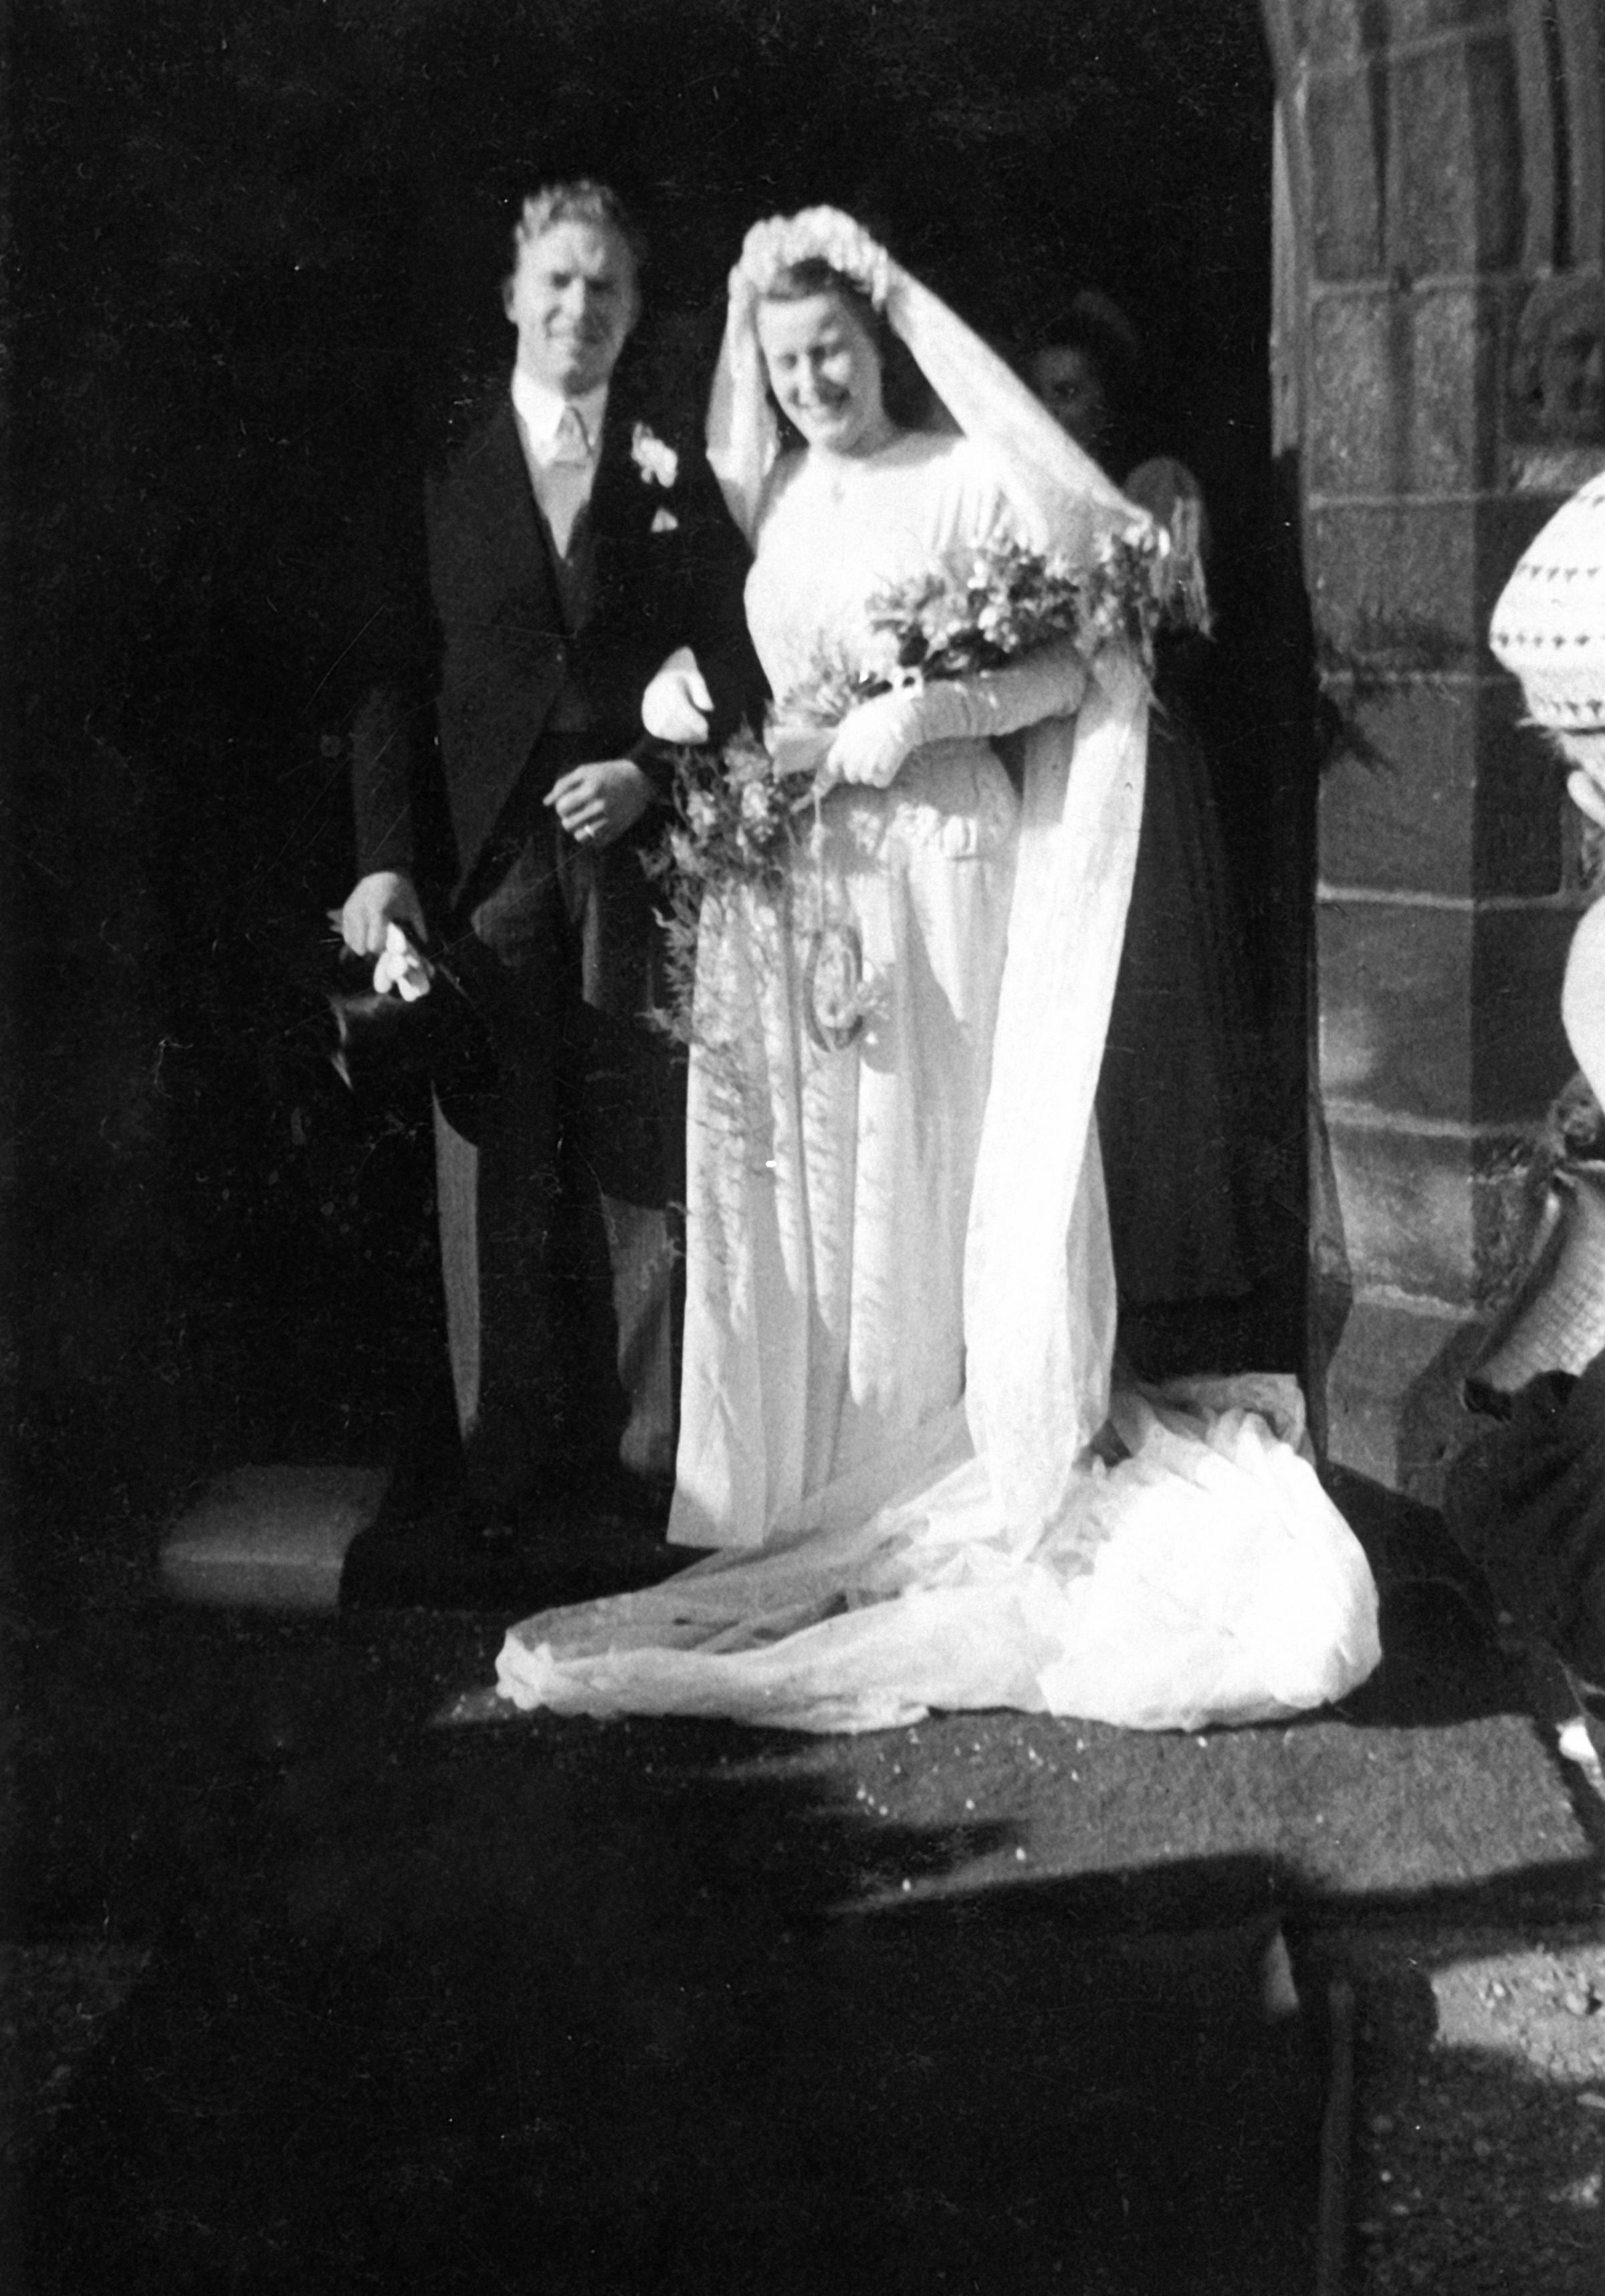 Jim and Jean Latimer on their wedding day in 1948